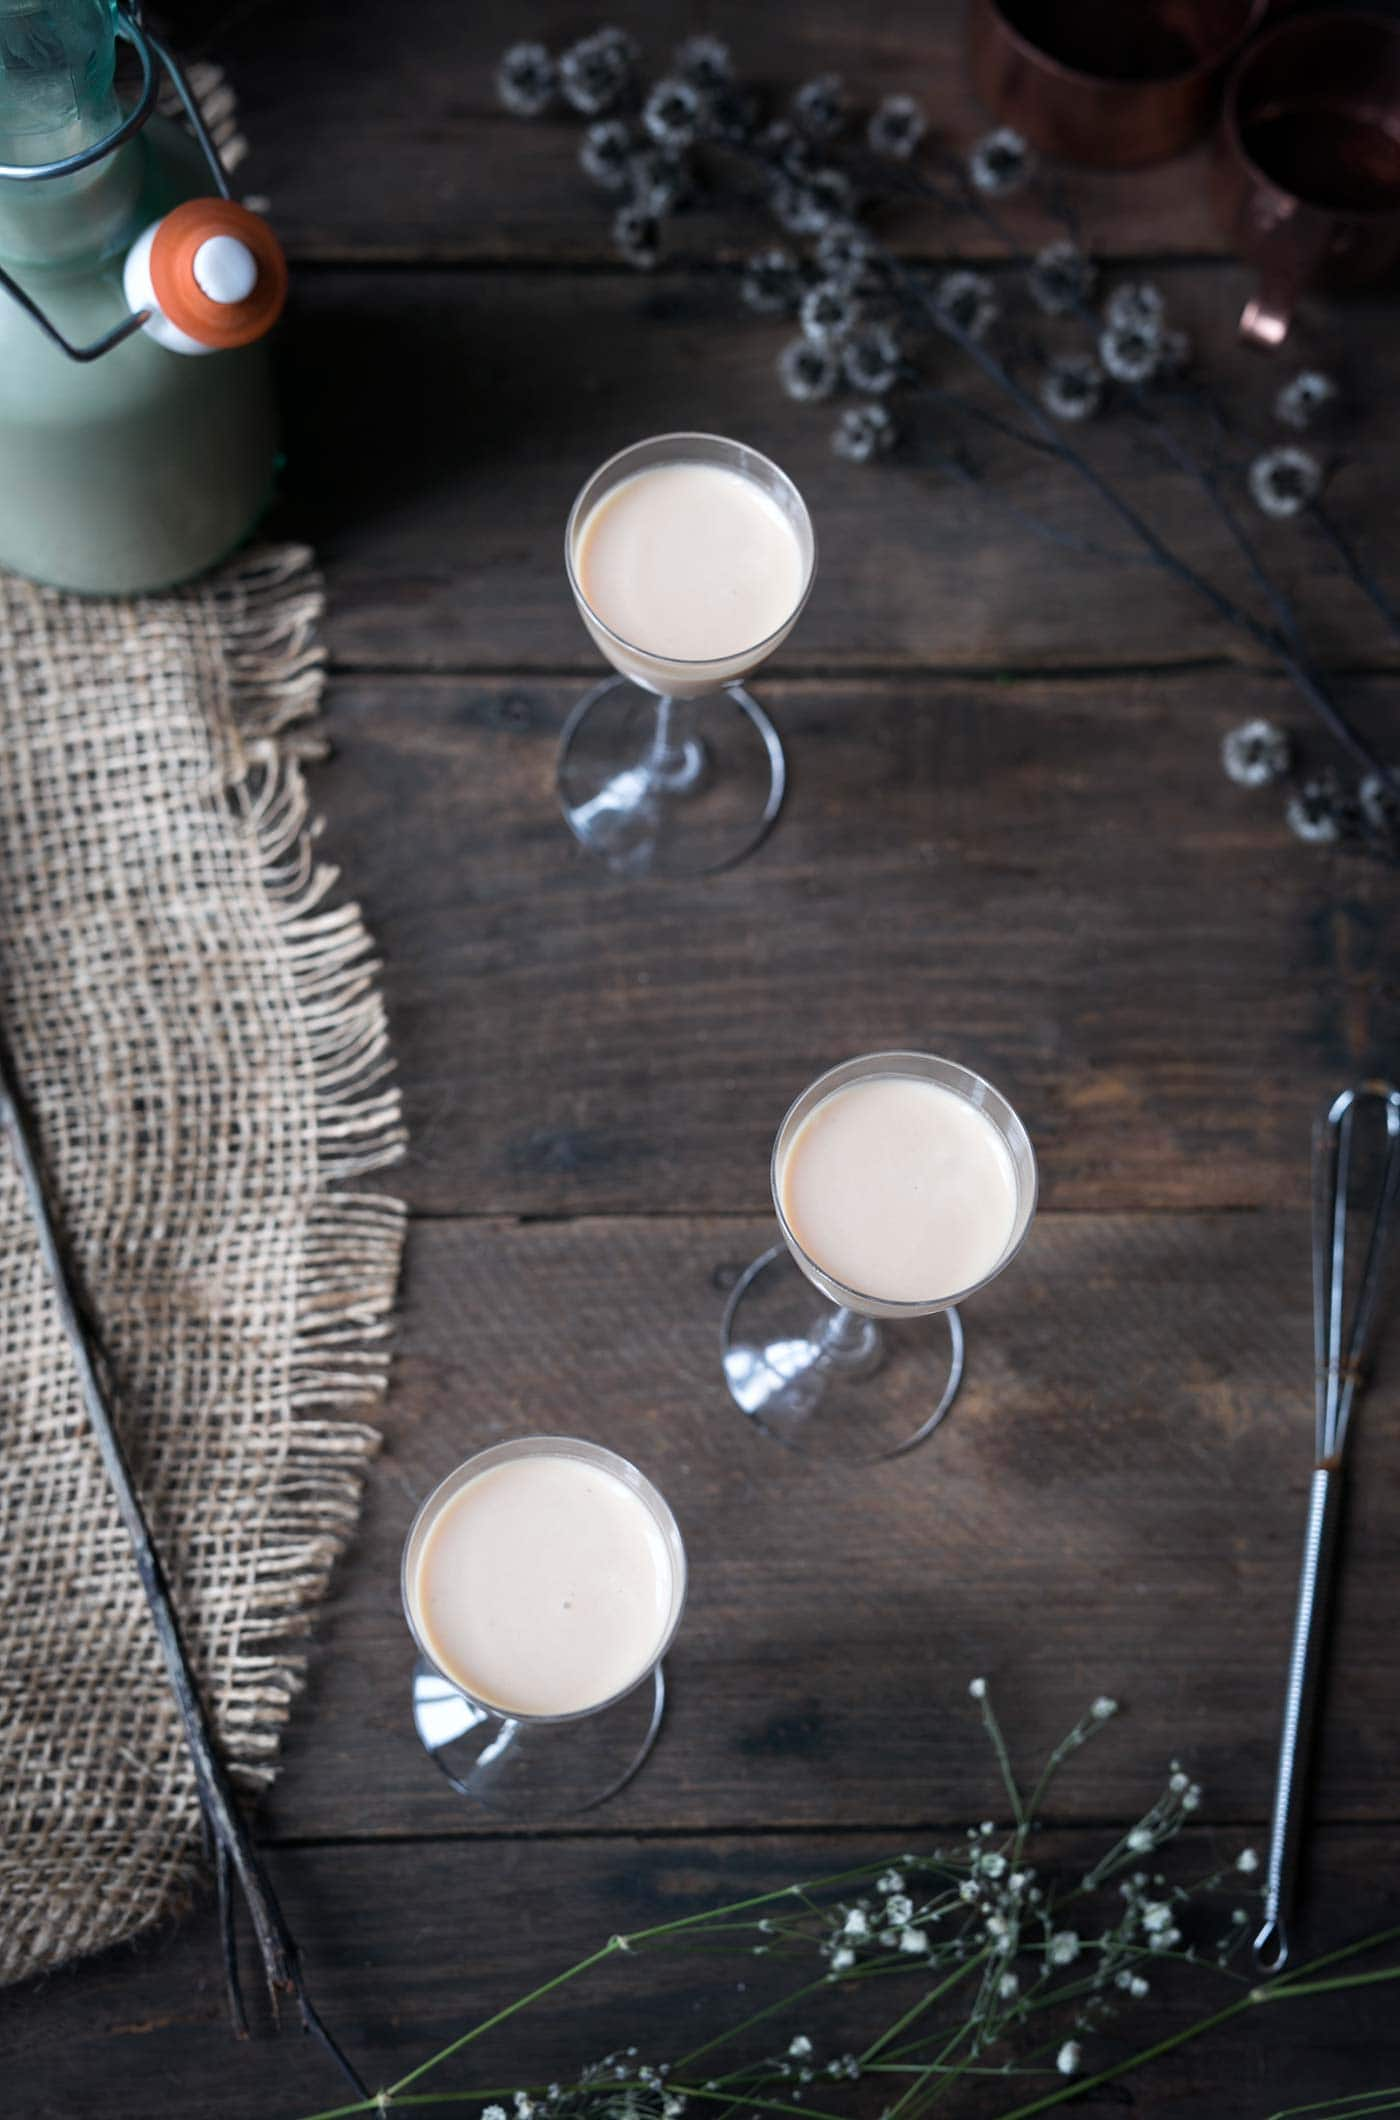 Love Bailey's Irish Cream? You need to try making it from scratch! Homemade Irish Cream is so easy and it tastes AMAZING. Get this Homemade Irish Cream Liqueur recipe from SavorySimple.net.